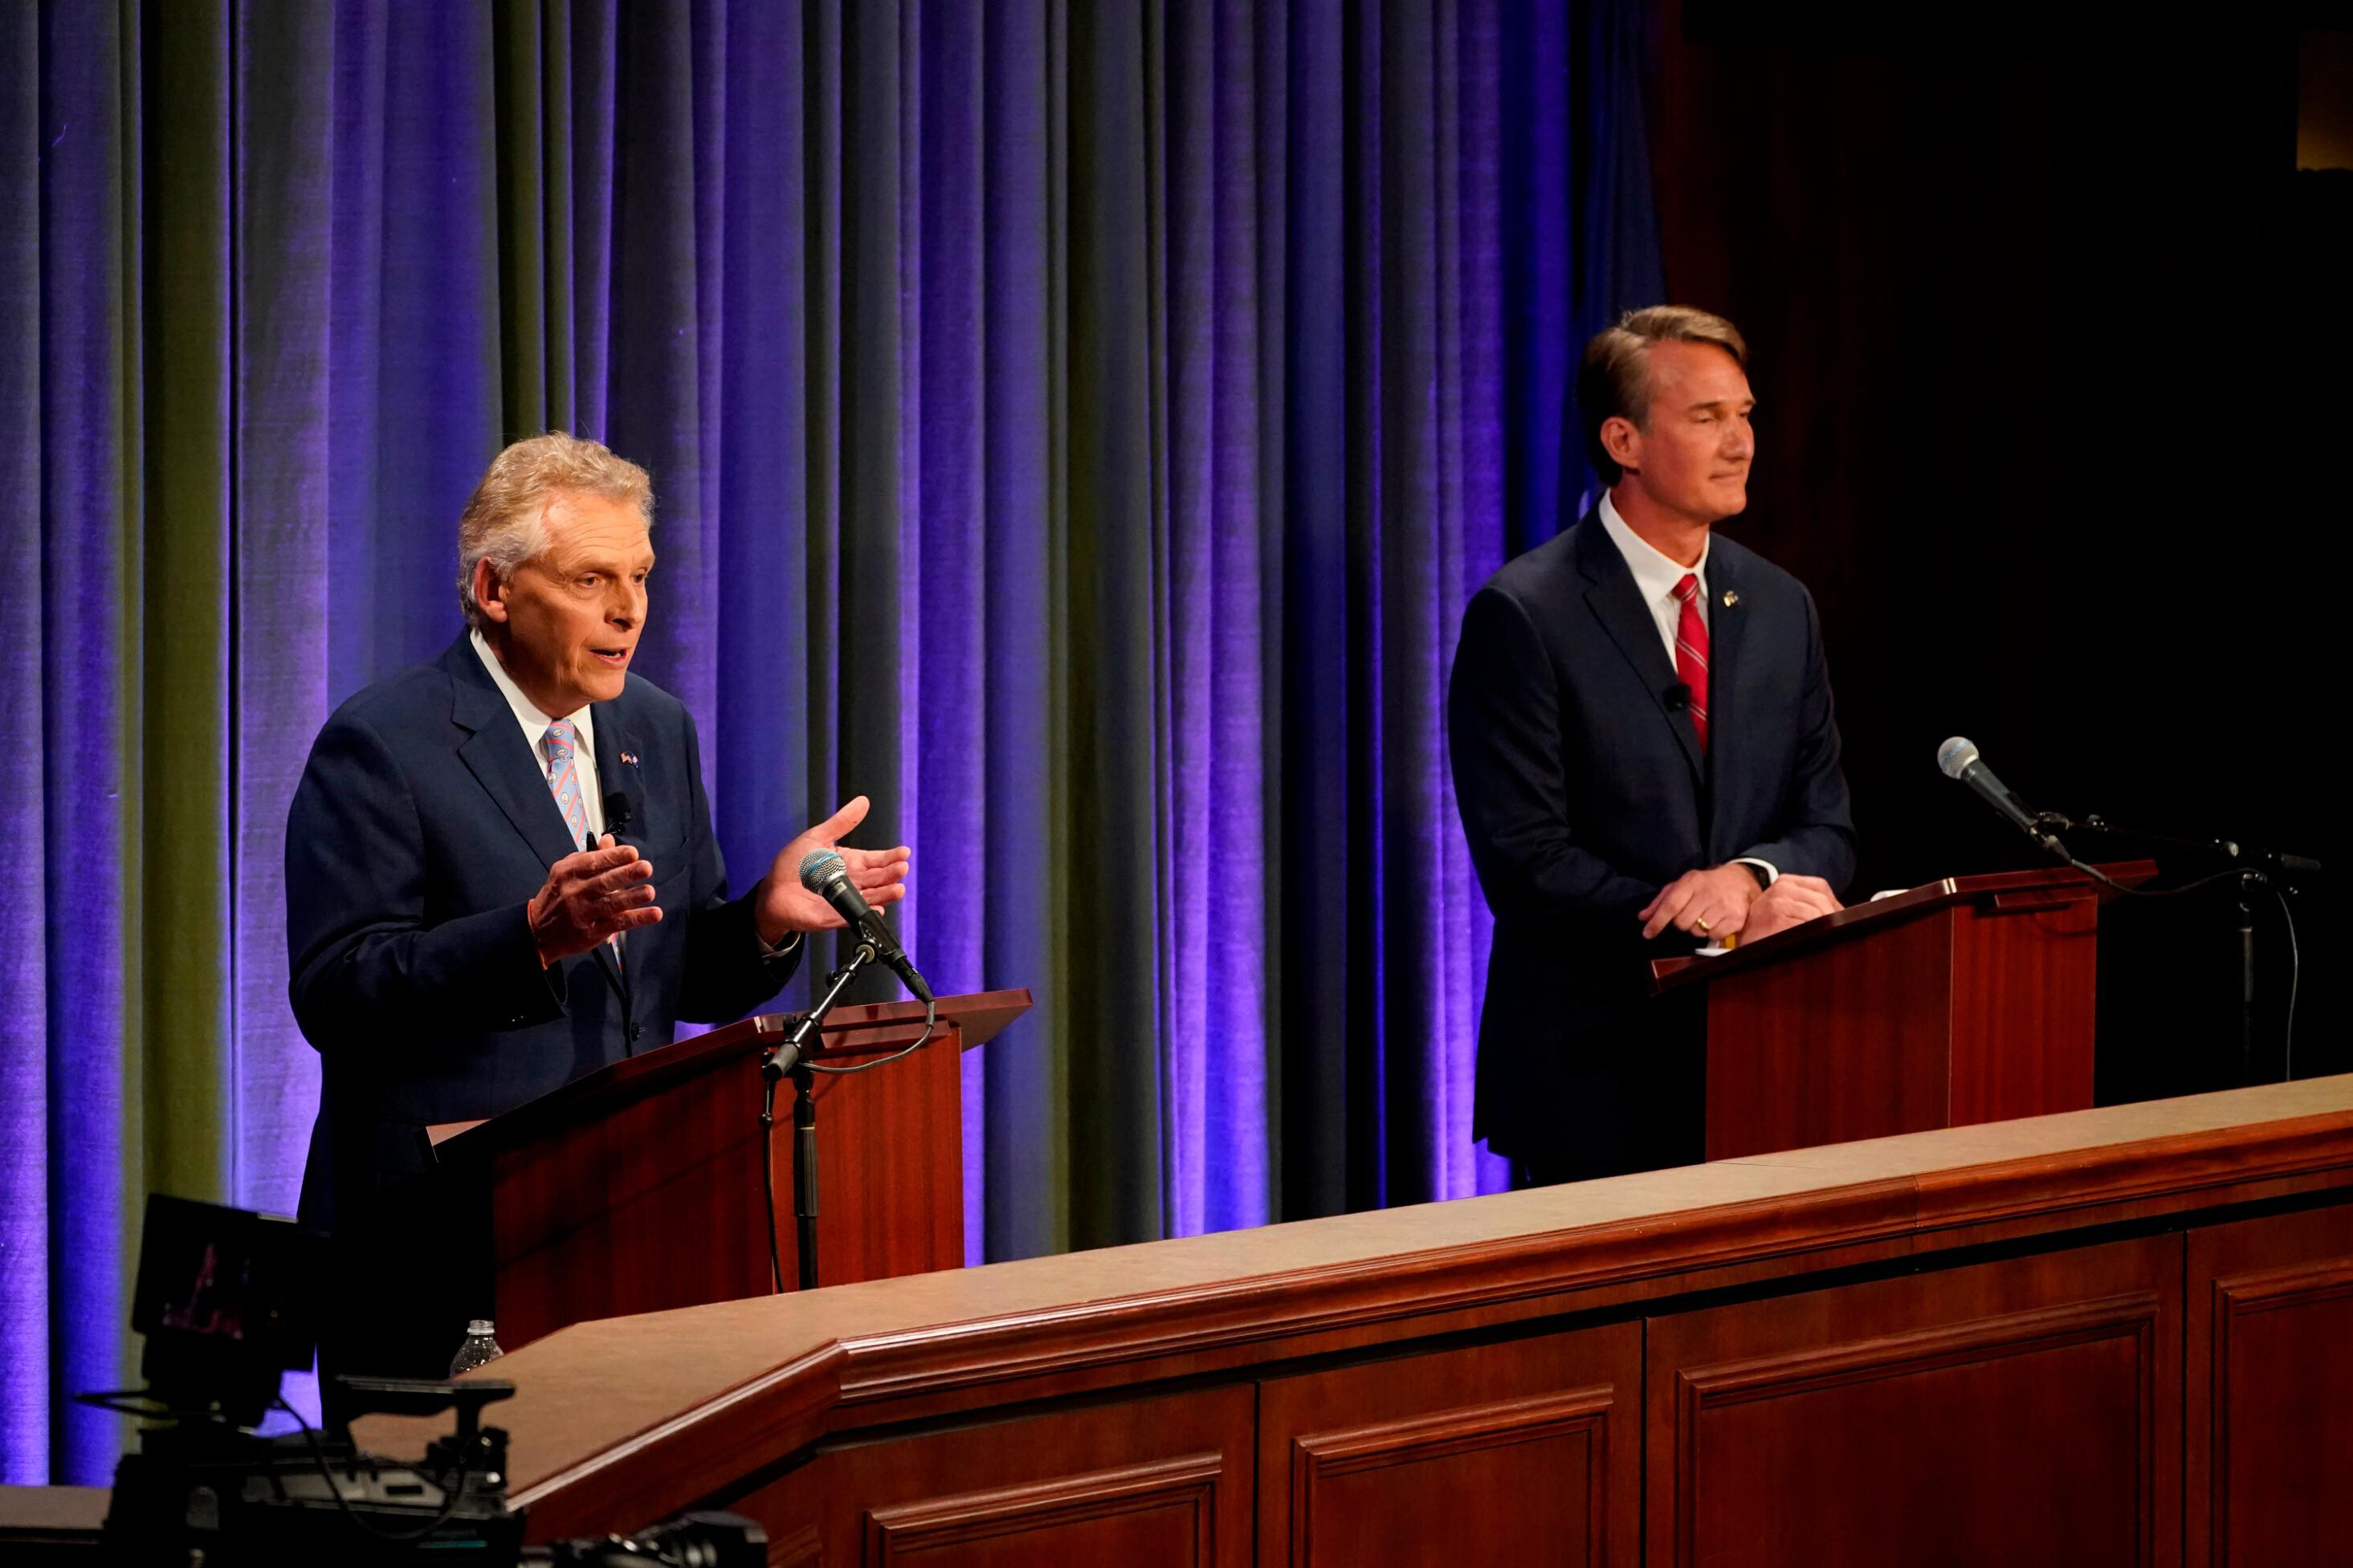 McAuliffe and Youngkin spar over Covid vaccine requirements in first Virginia debate